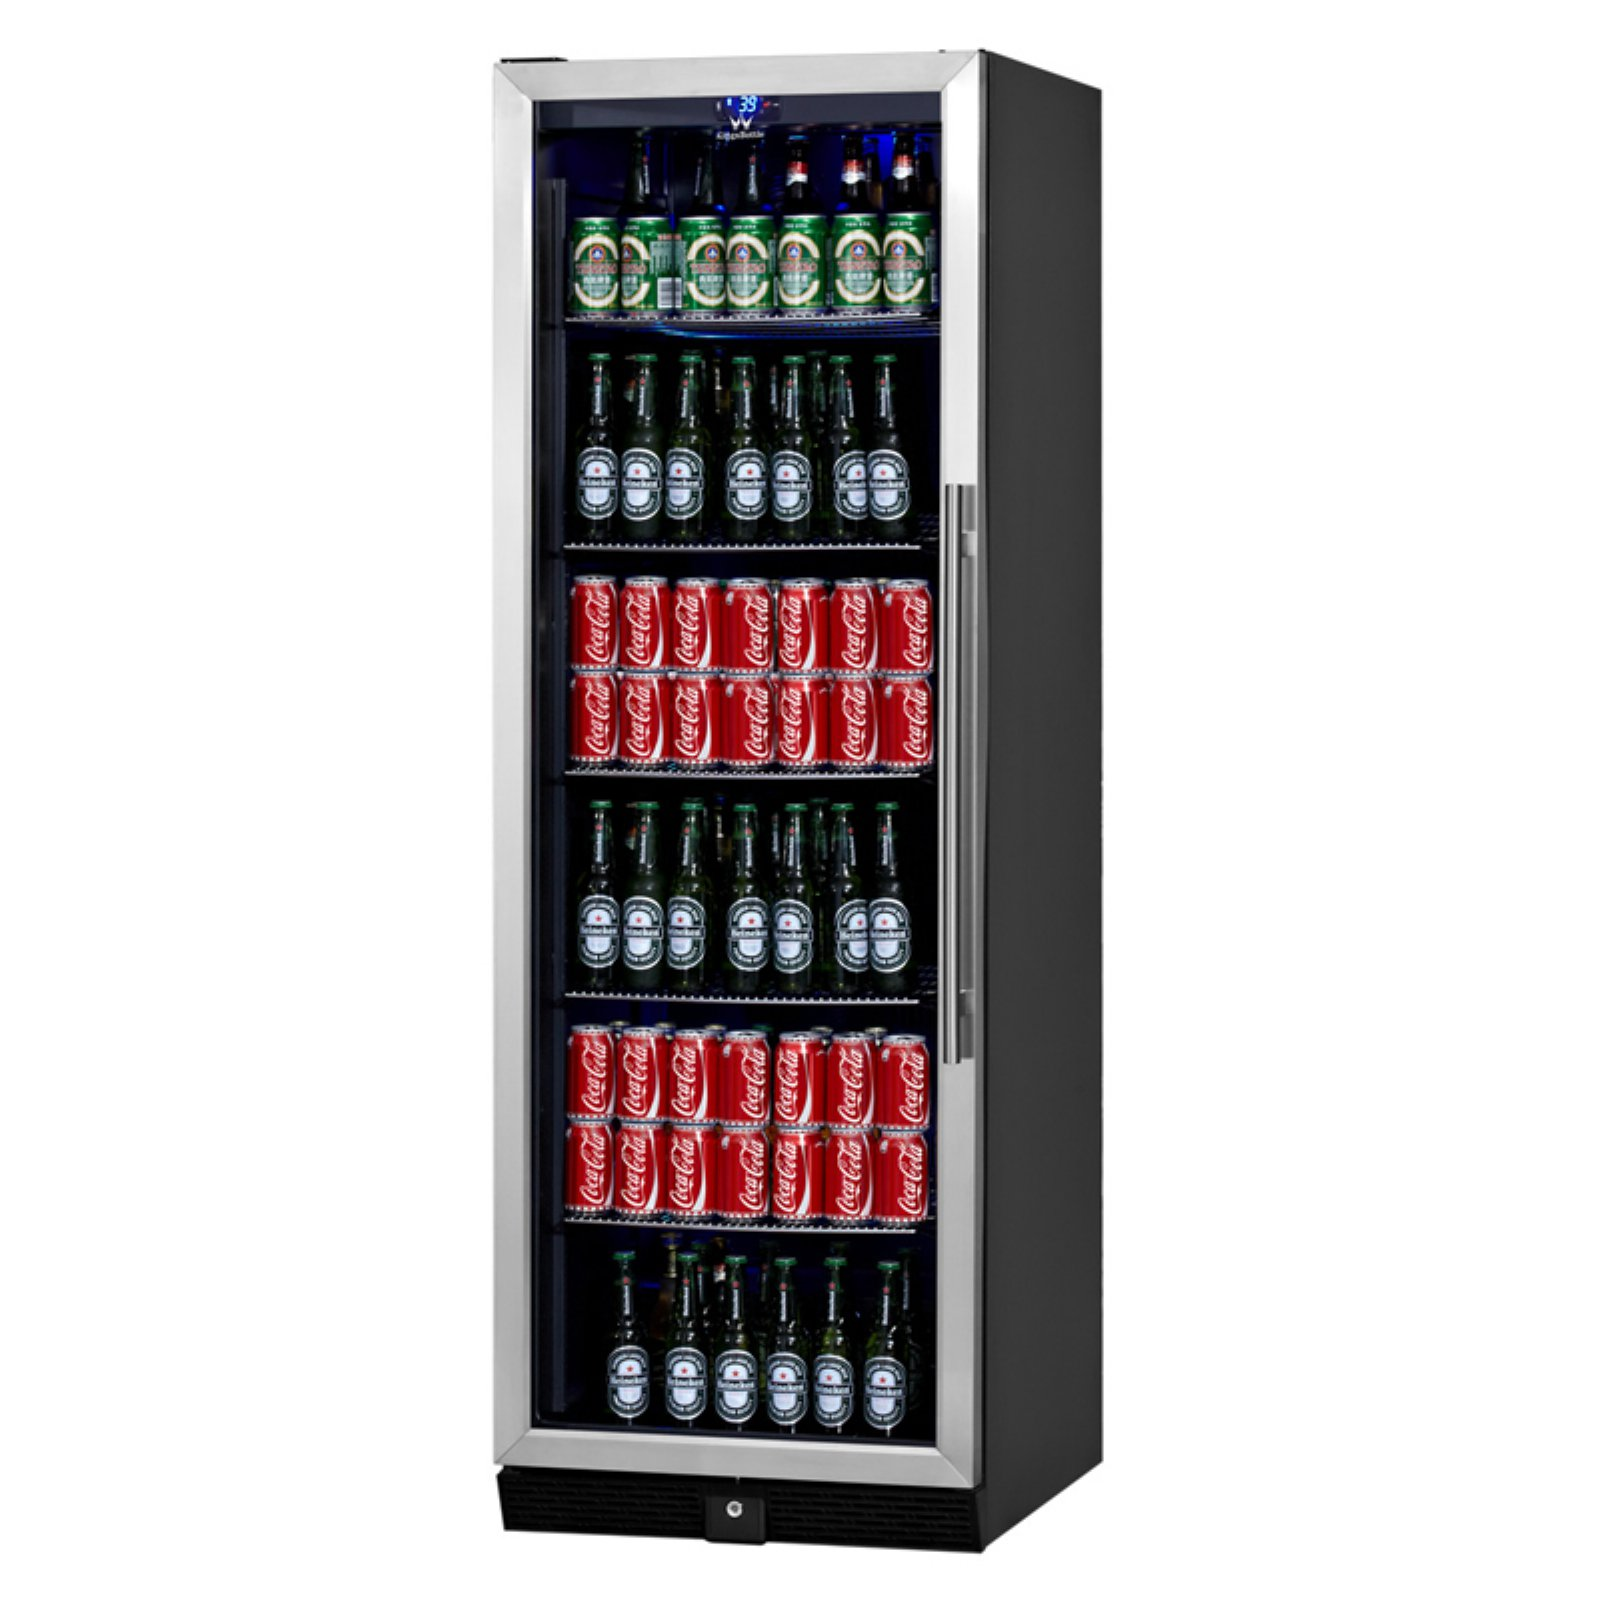 Kingsbottle 450-Can Beverage Fridge, Silver